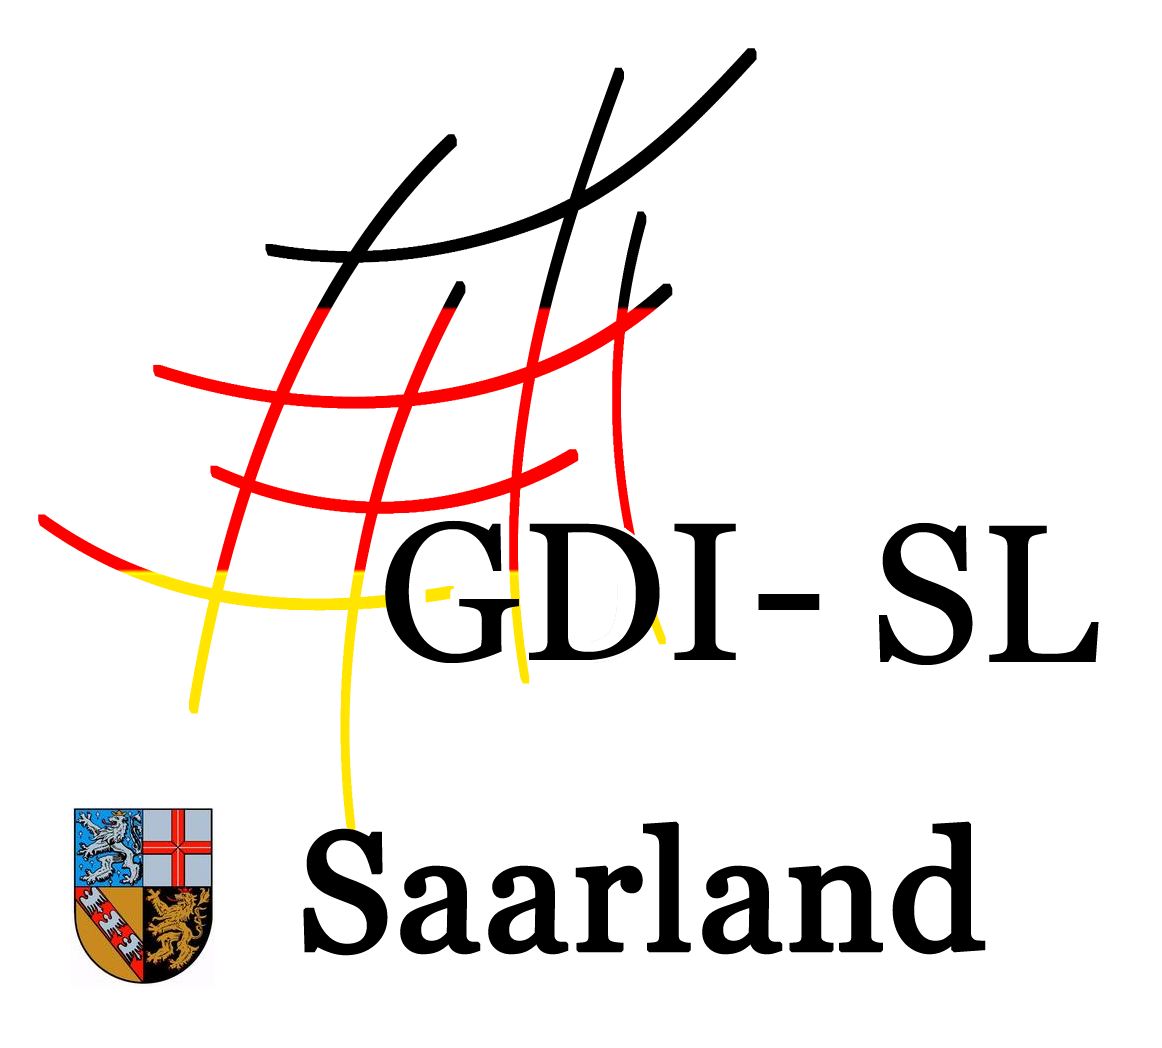 Logo of the spatial data infrastructure organization